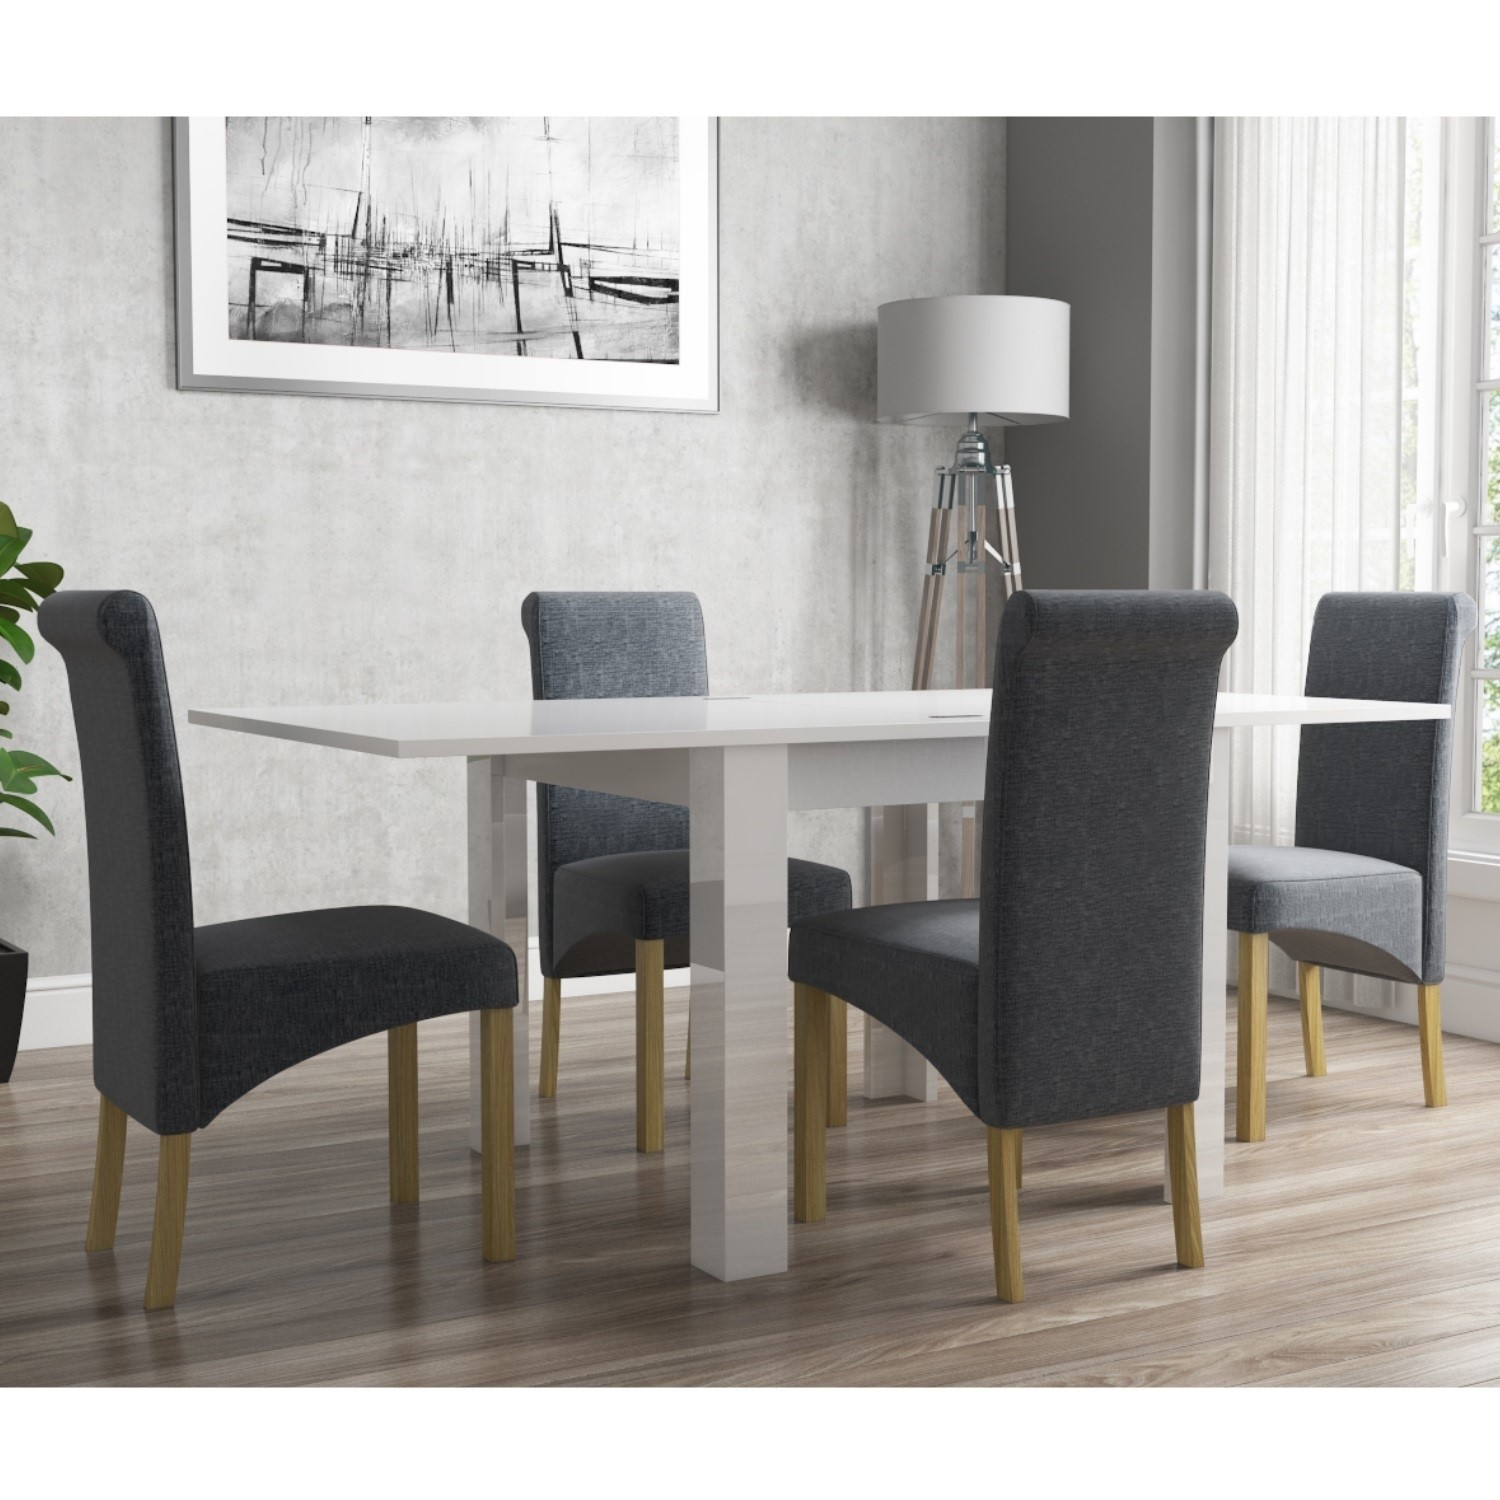 Vivienne Flip Top White Gloss Kitchen Dining Table and 4 ...